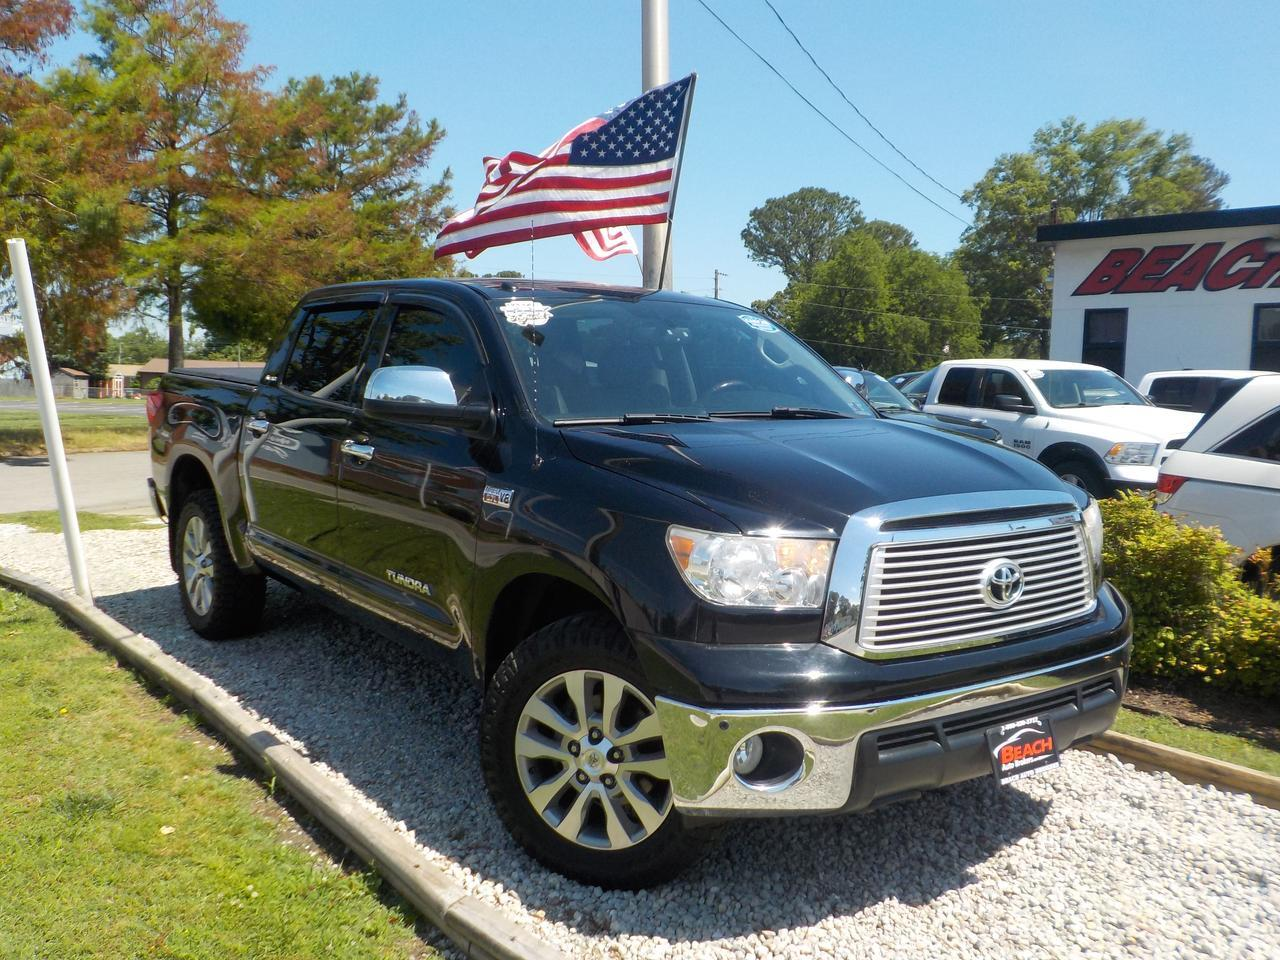 2012 TOYOTA TUNDRA LIMITED CREWMAX 4X4, WARRANTY, LEATHER, SUNROOF, BACKUP CAM, PARKING SENSORS, NAV, BLUETOOTH! Norfolk VA